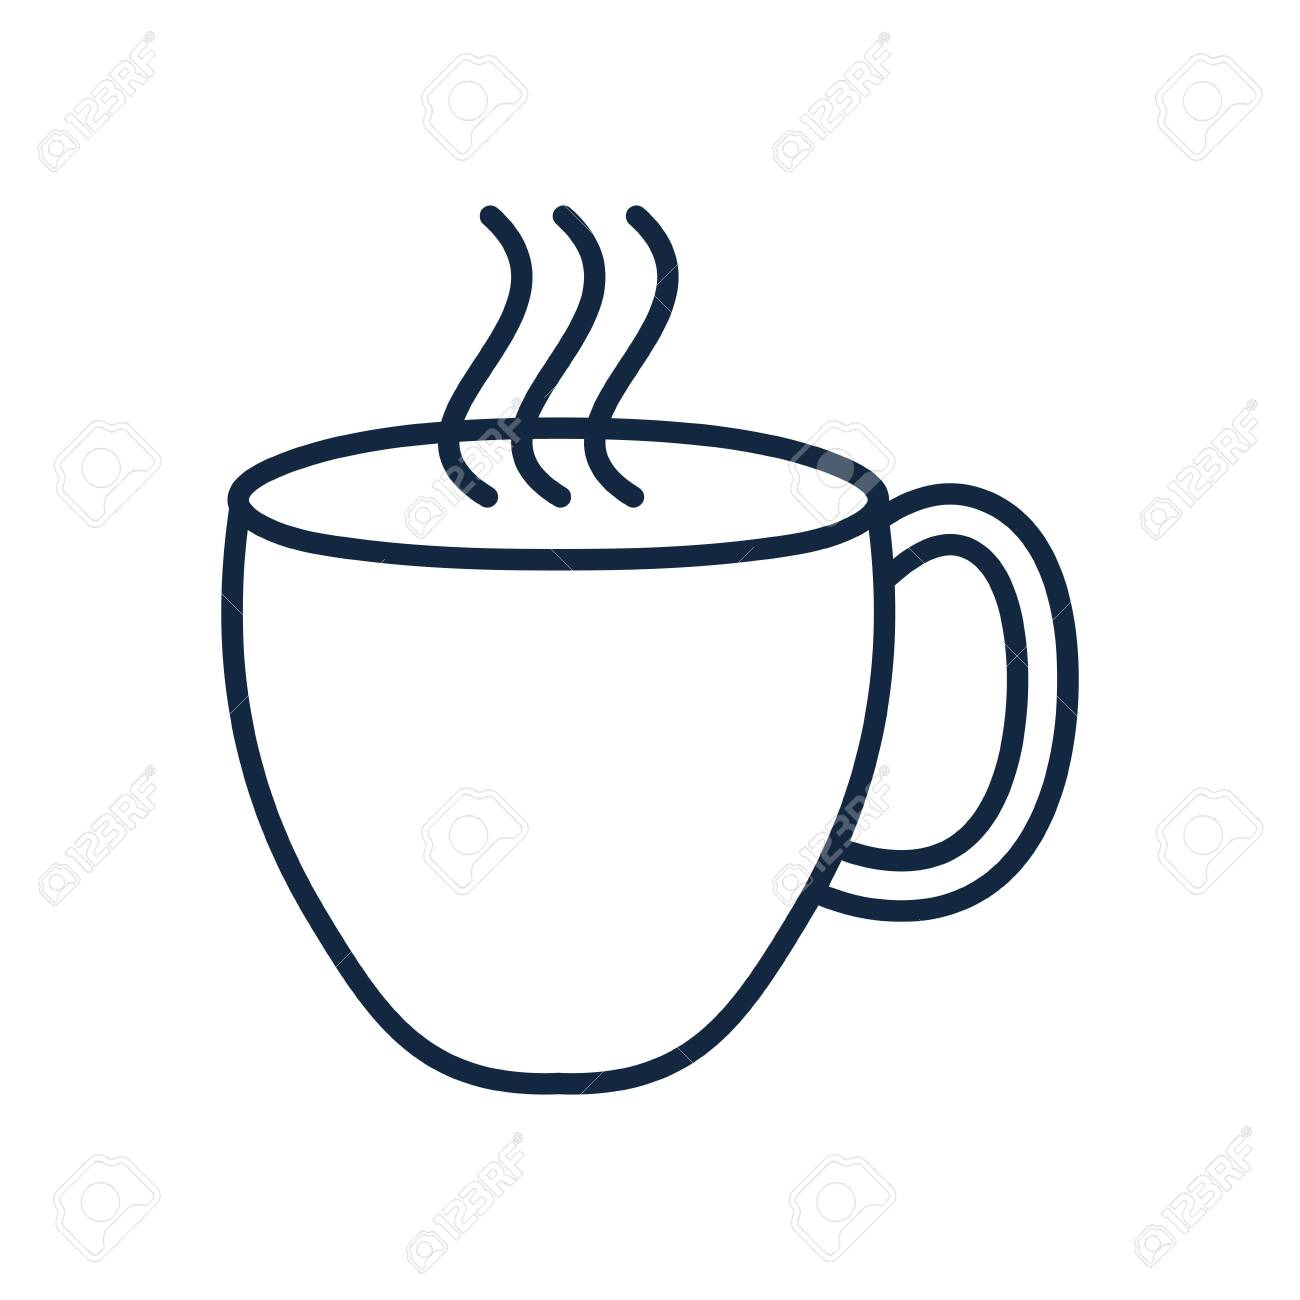 Tea Cup Doodle Line Style Icon Design Ornament Sketch Art Drawing Royalty Free Cliparts Vectors And Stock Illustration Image 141472268